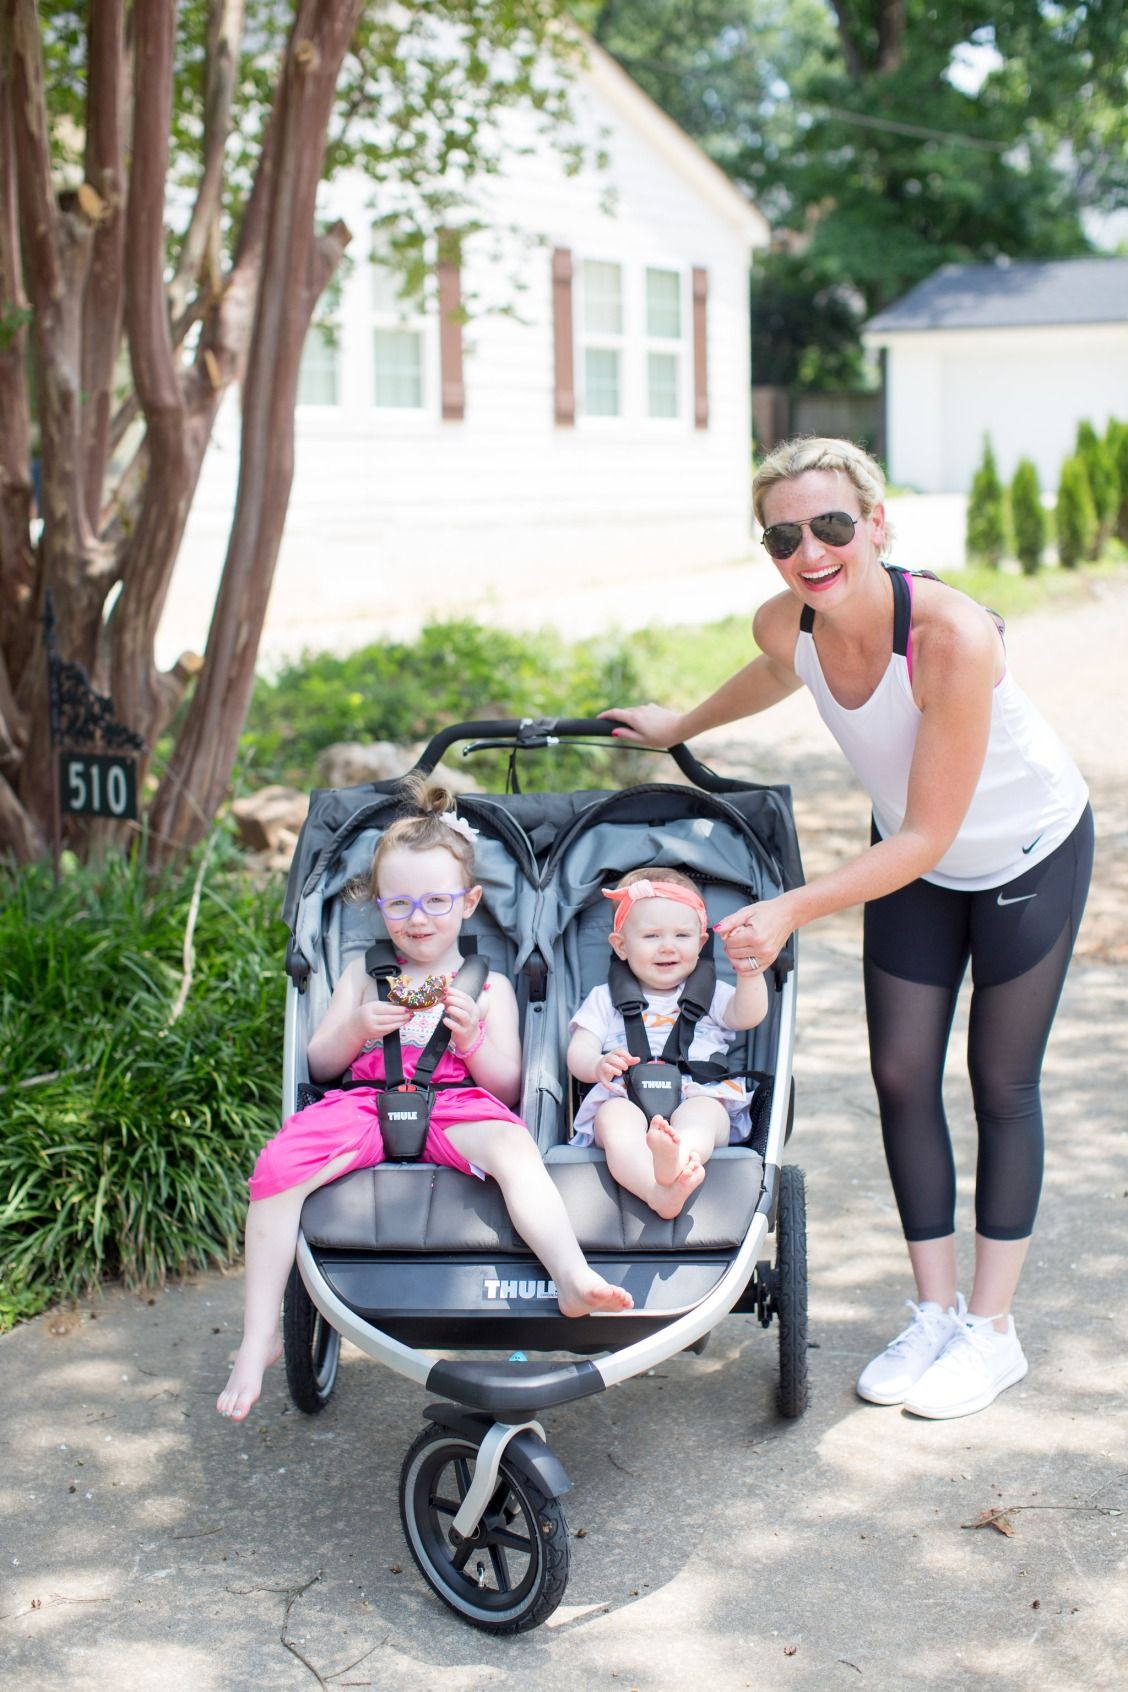 The Best Jogging Stroller From Buy Buy Baby Babyhood Jogging